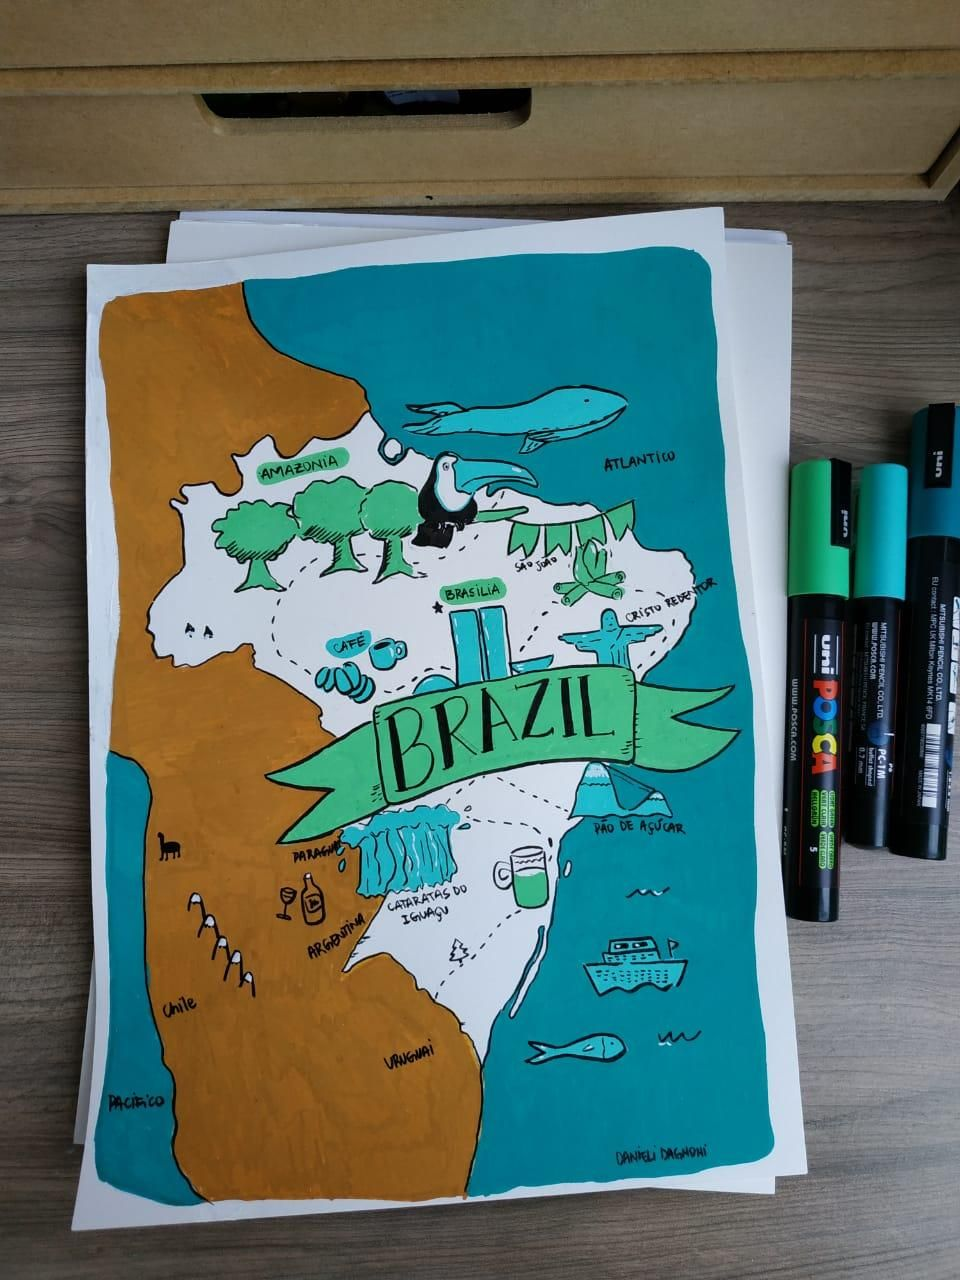 Brazil map - image 3 - student project